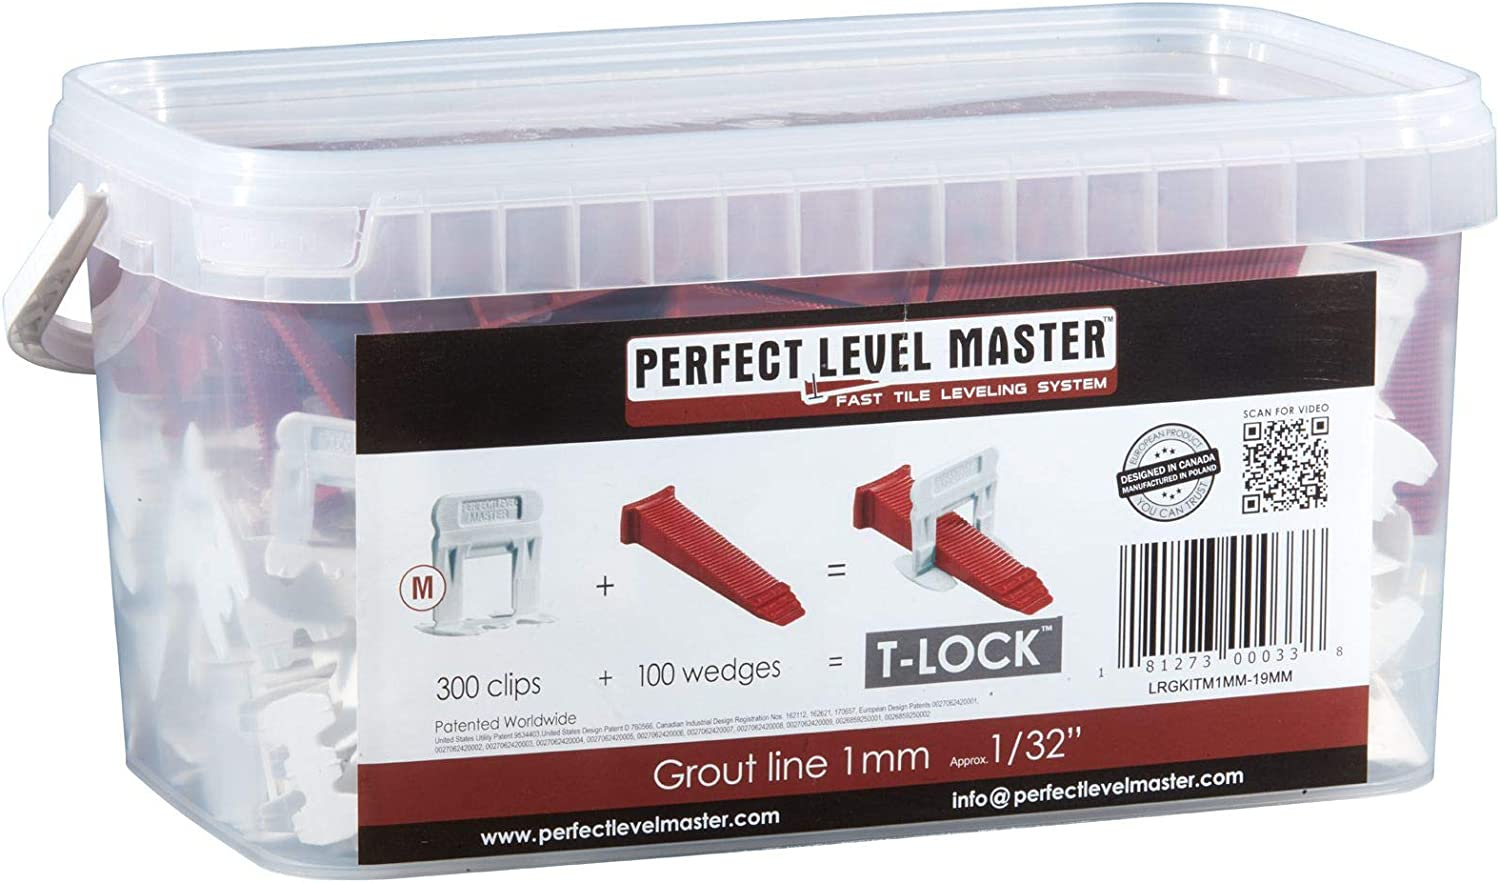 "1/32"" T-Lock Complete KIT Anti lippage Tile Leveling System by PERFECT LEVEL MASTER 300 spacers & 100 Wedges in Handy Bucket ! Tlock"